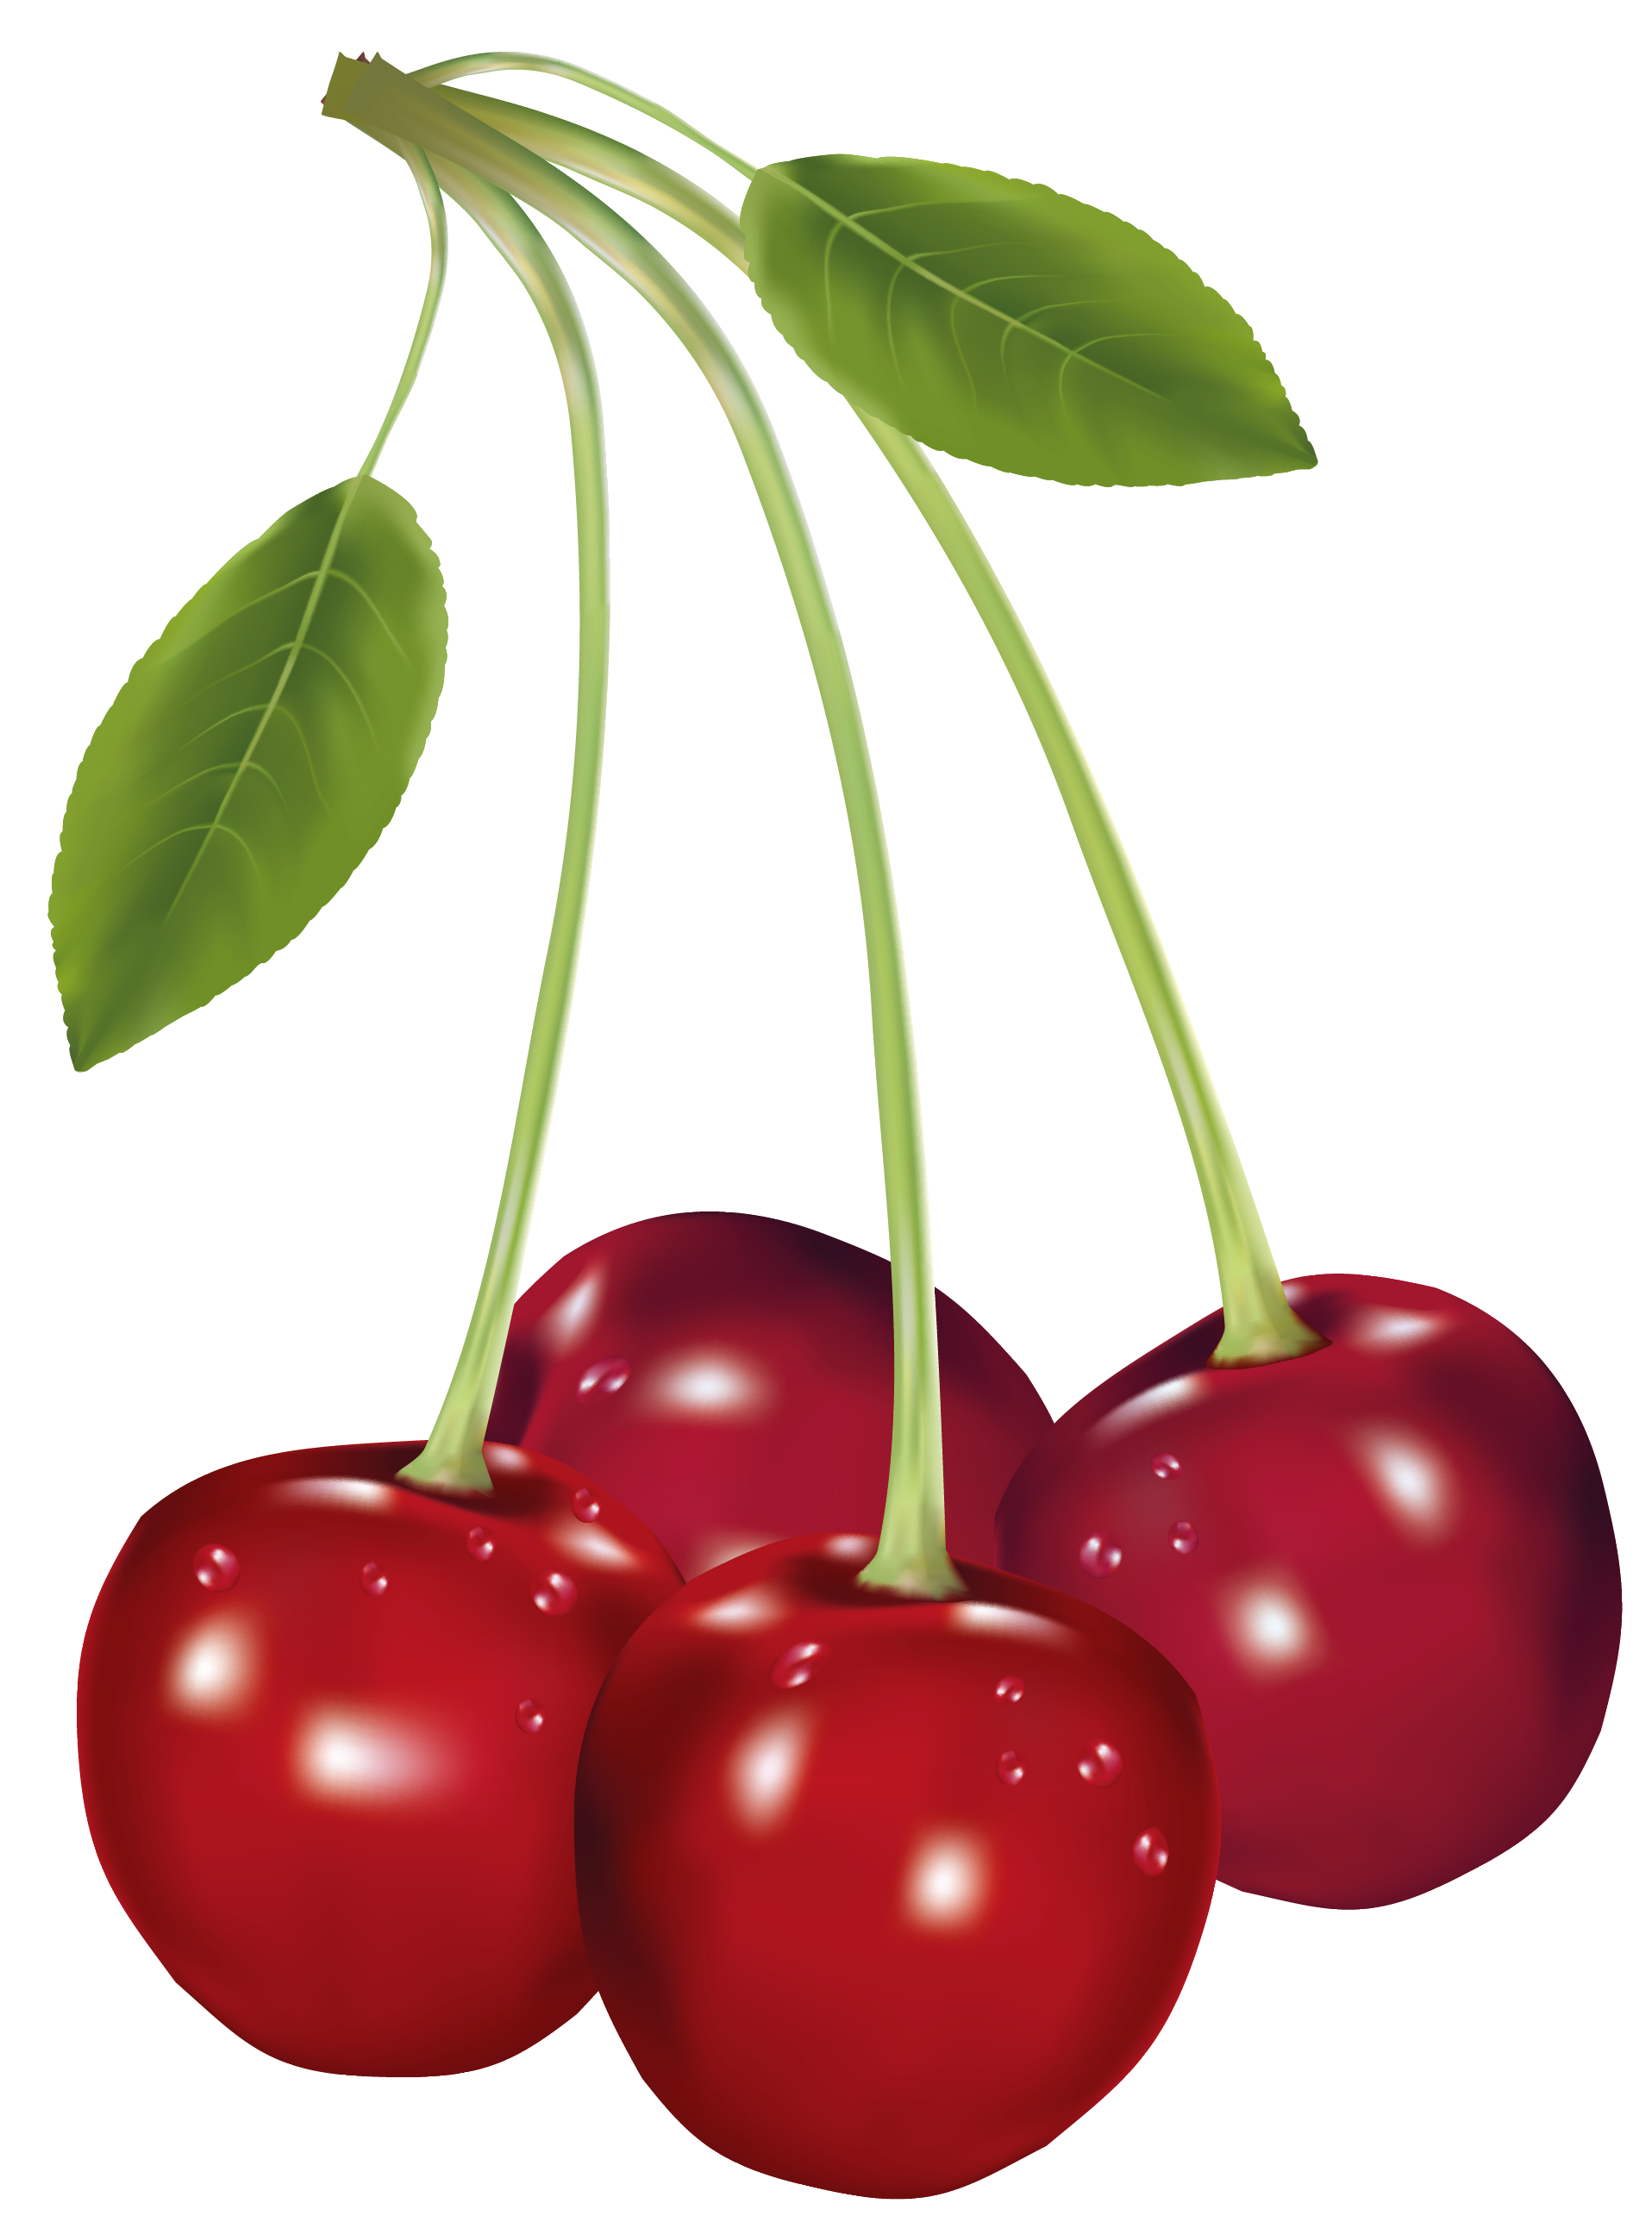 Cherries png picture gallery. Cherry clipart cherry fruit